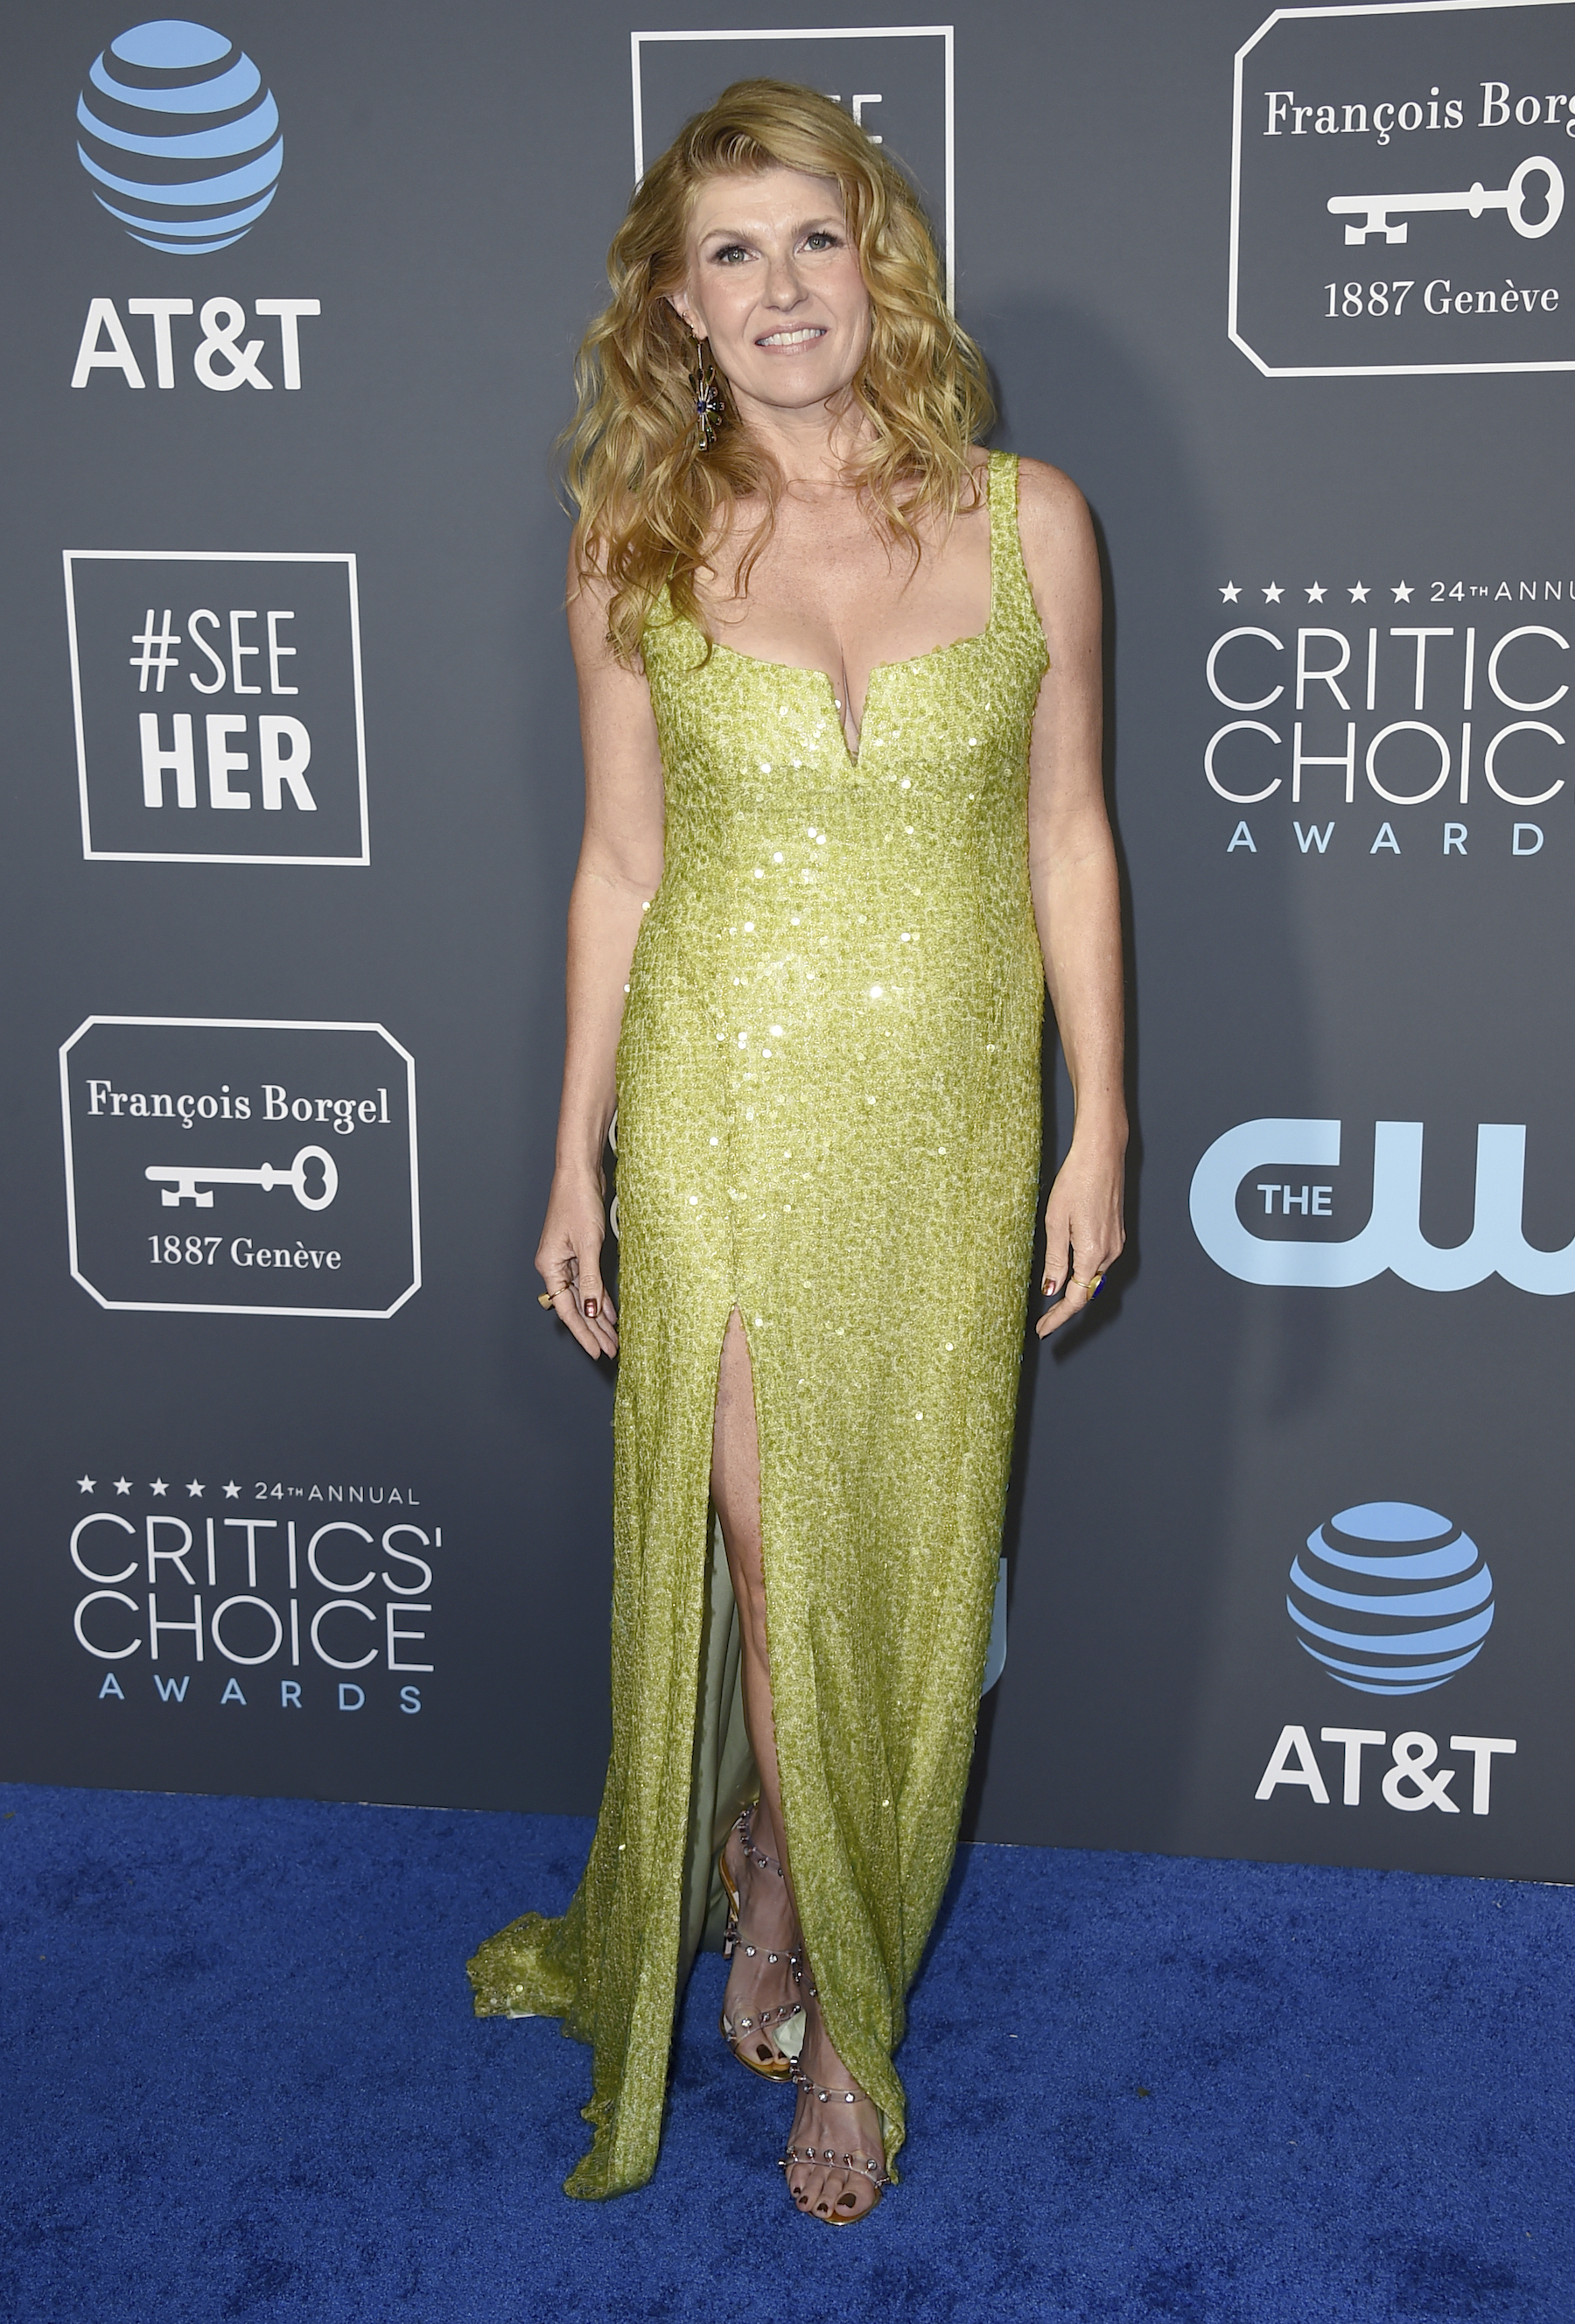 "<div class=""meta image-caption""><div class=""origin-logo origin-image ap""><span>AP</span></div><span class=""caption-text"">Connie Britton arrives at the 24th annual Critics' Choice Awards on Sunday, Jan. 13, 2019, at the Barker Hangar in Santa Monica, Calif. (Jordan Strauss/Invision/AP)</span></div>"